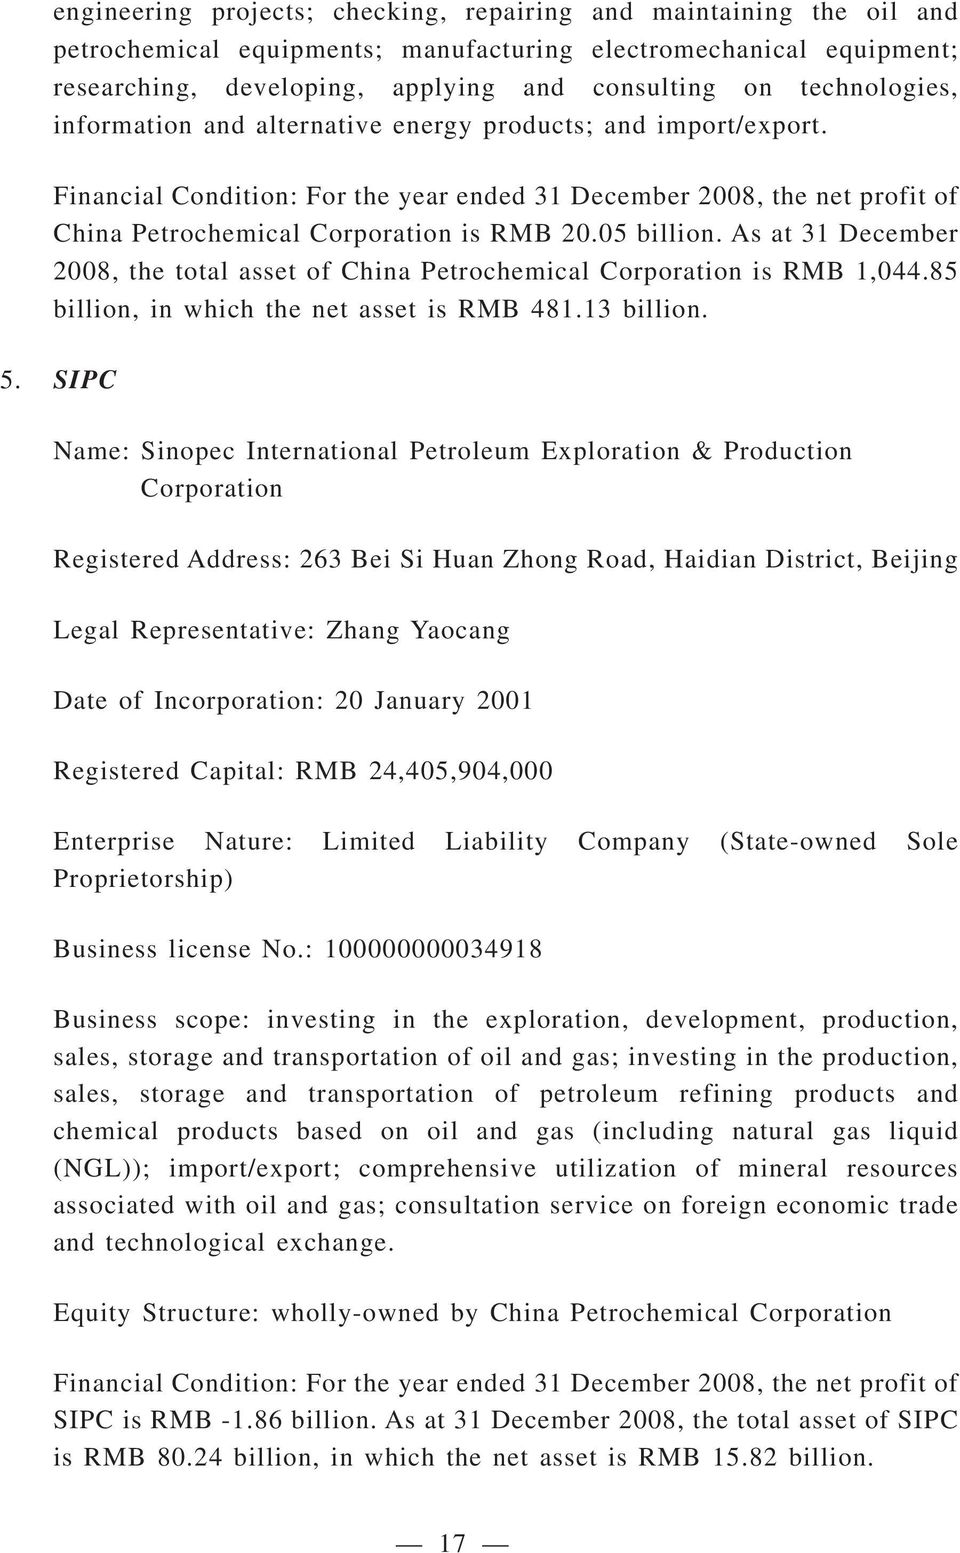 05 billion. As at 31 December 2008, the total asset of China Petrochemical Corporation is RMB 1,044.85 billion, in which the net asset is RMB 481.13 billion. 5.